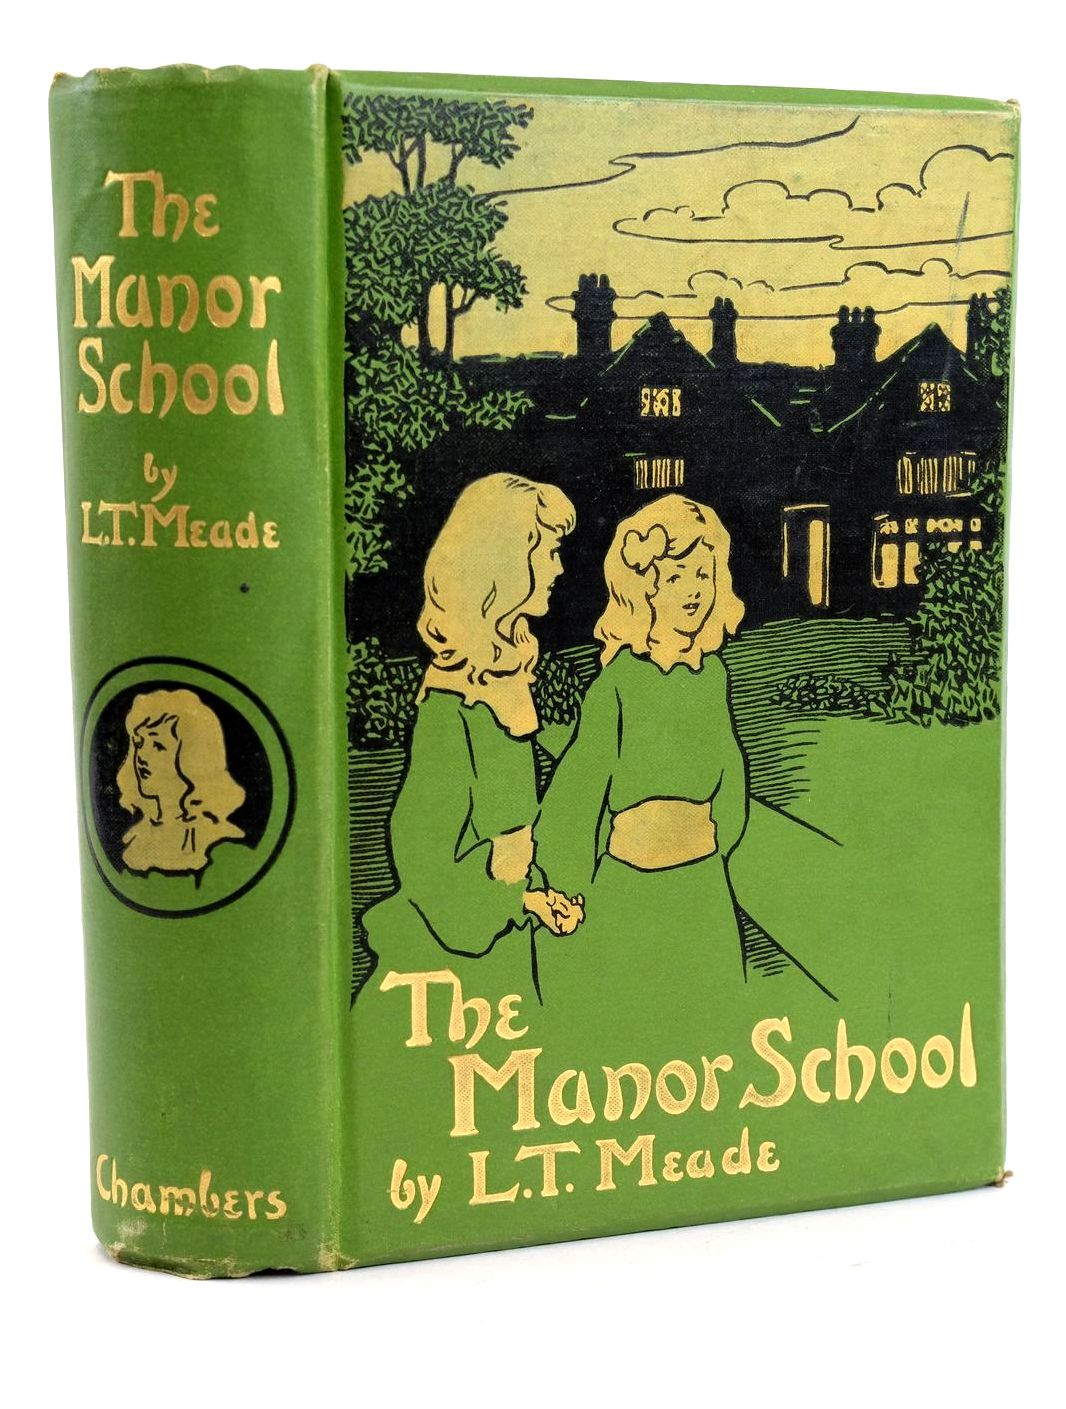 Photo of THE MANOR SCHOOL written by Meade, L.T. illustrated by Baumer, Lewis published by W. & R. Chambers Limited (STOCK CODE: 1319063)  for sale by Stella & Rose's Books